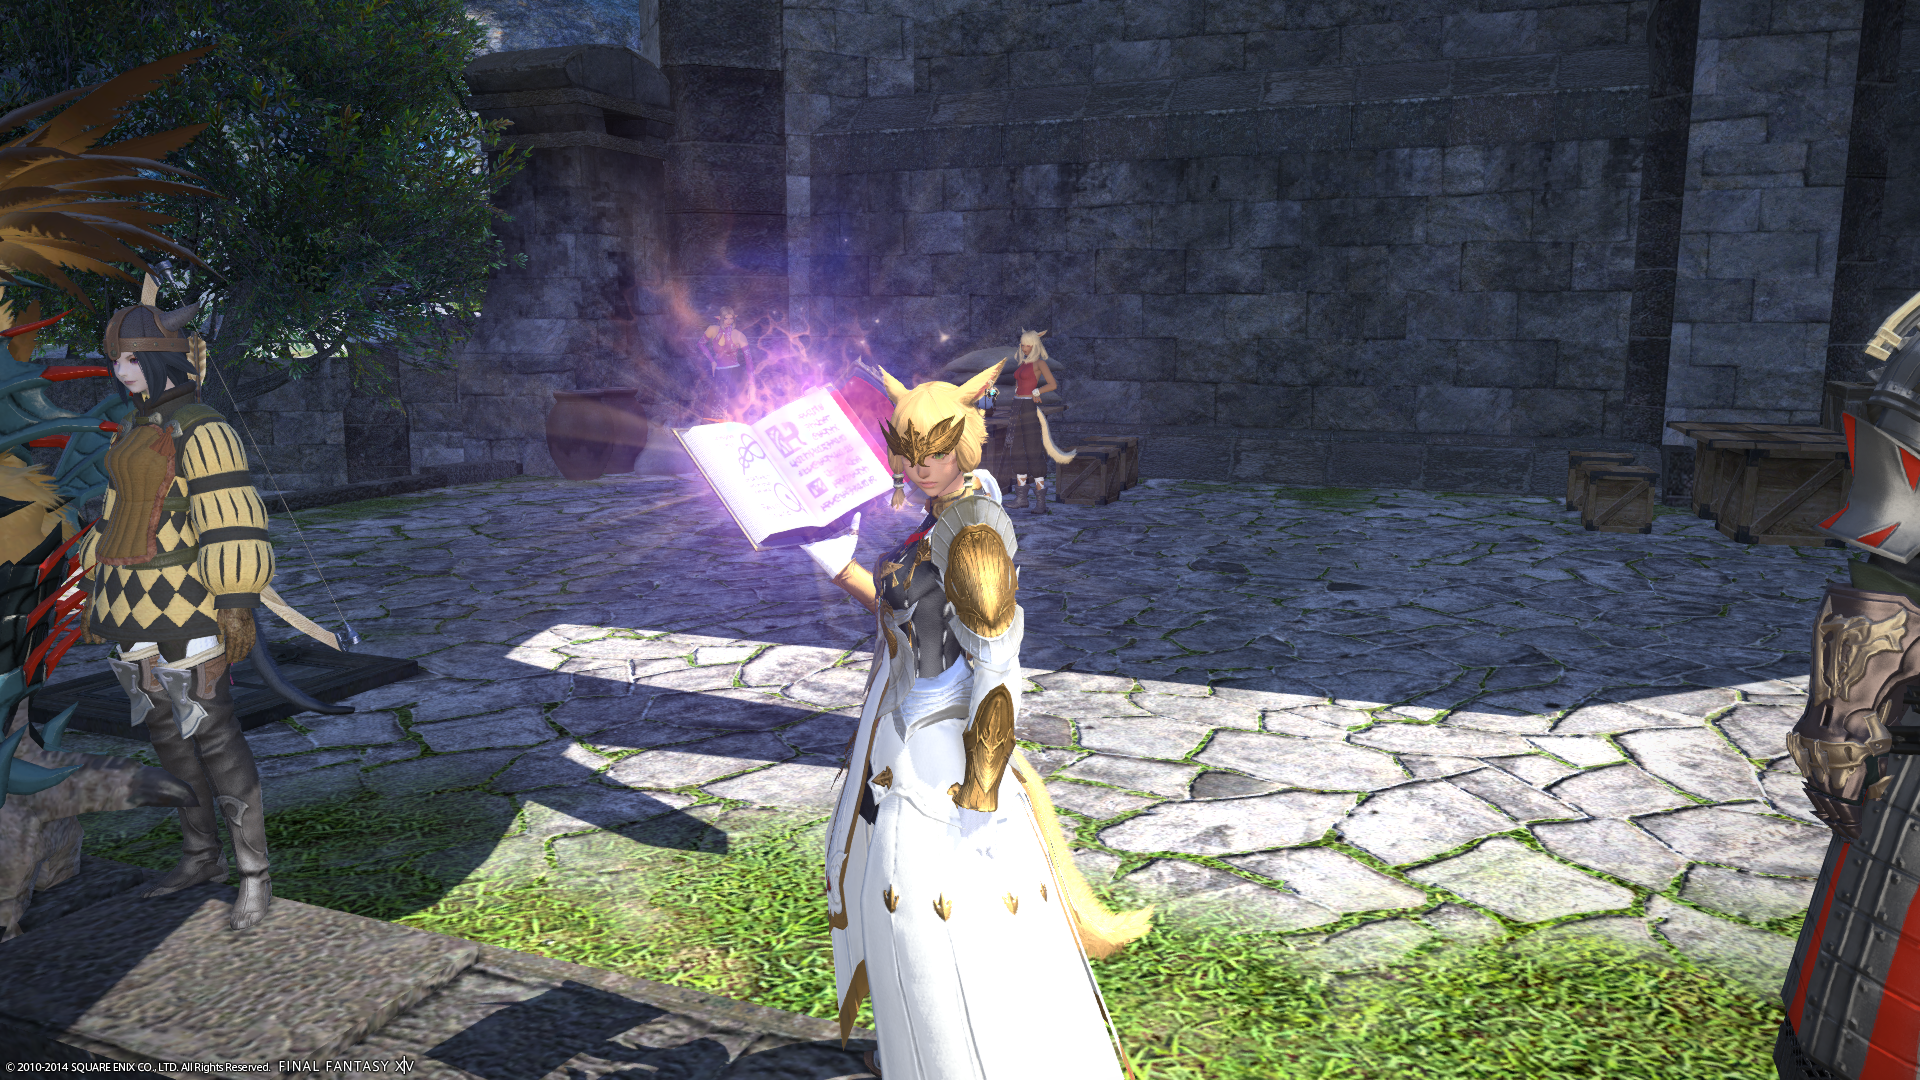 cloudius ffxiv posting keep close finishing great tool this lights sorry again weapon information nexus novus atma zodiac last night glass messed fixes relic